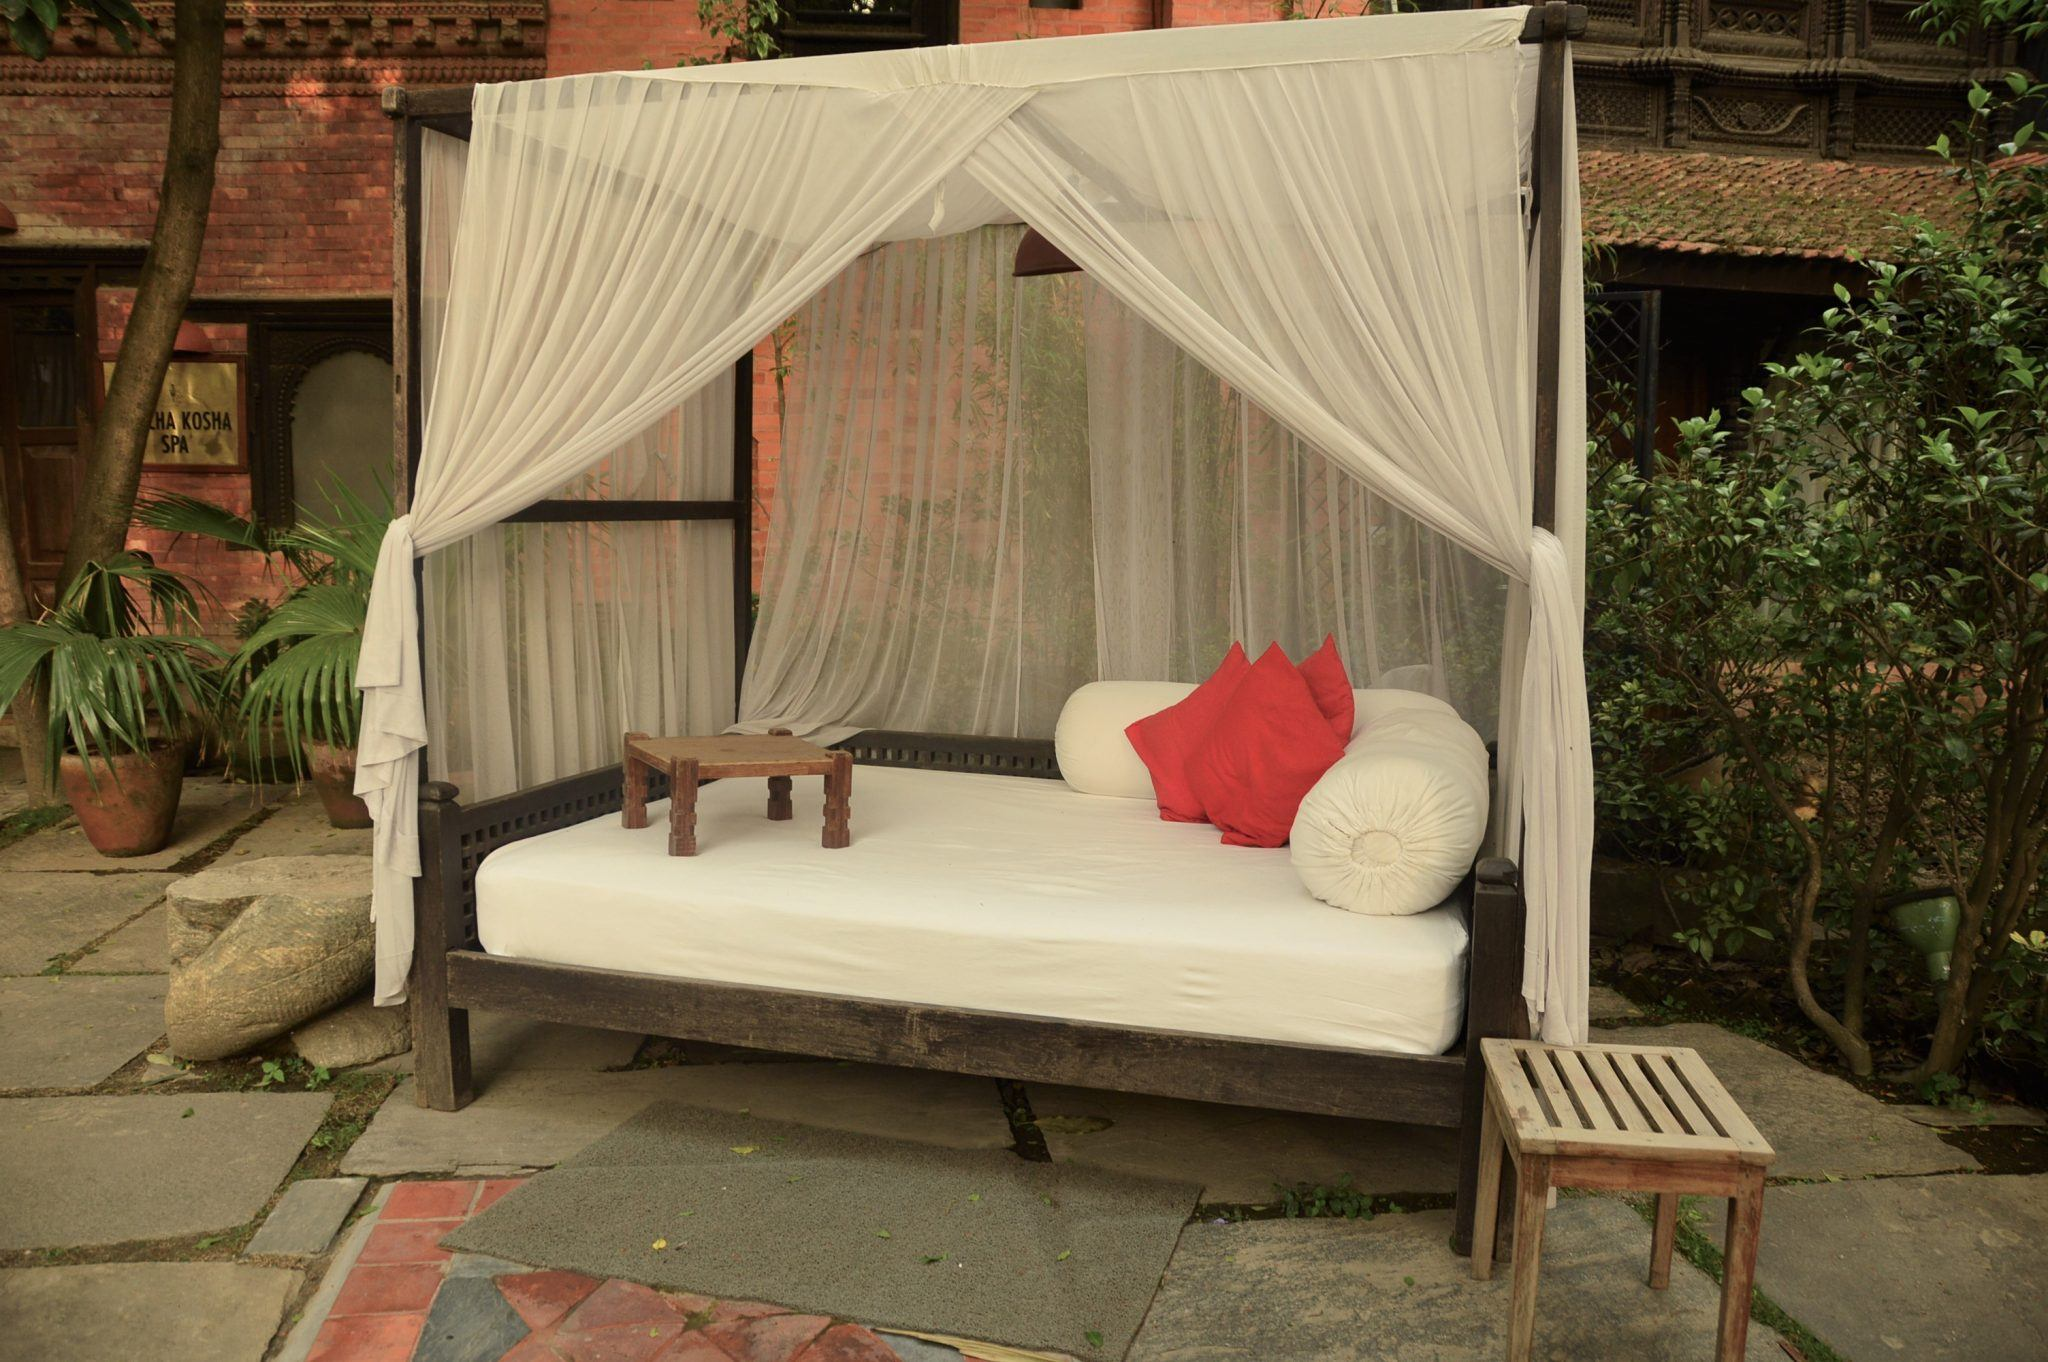 day bed by the pool at Dwarika's hotel kathmandu nepal